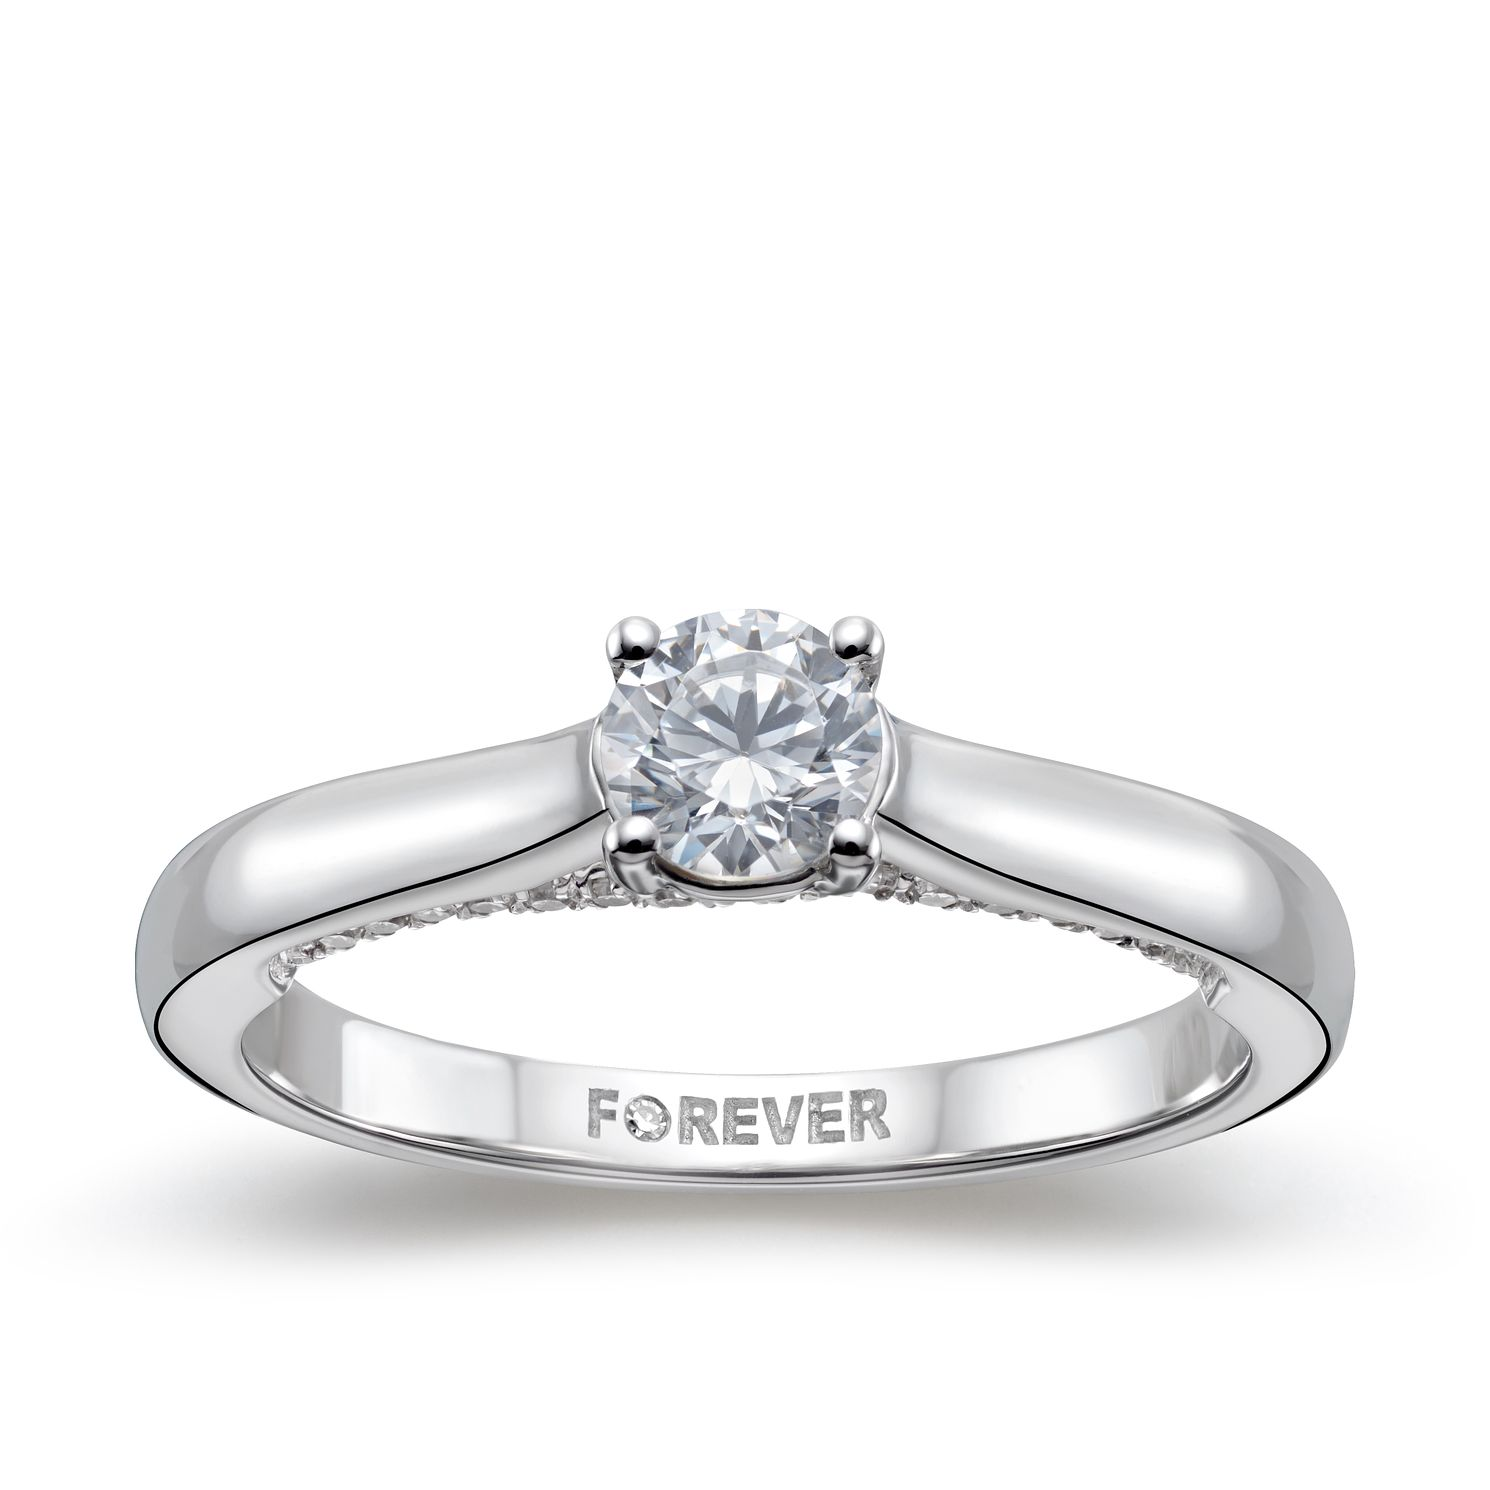 wise wedding jewelry about ring engagement diamond basic for rings you need article settings to know what